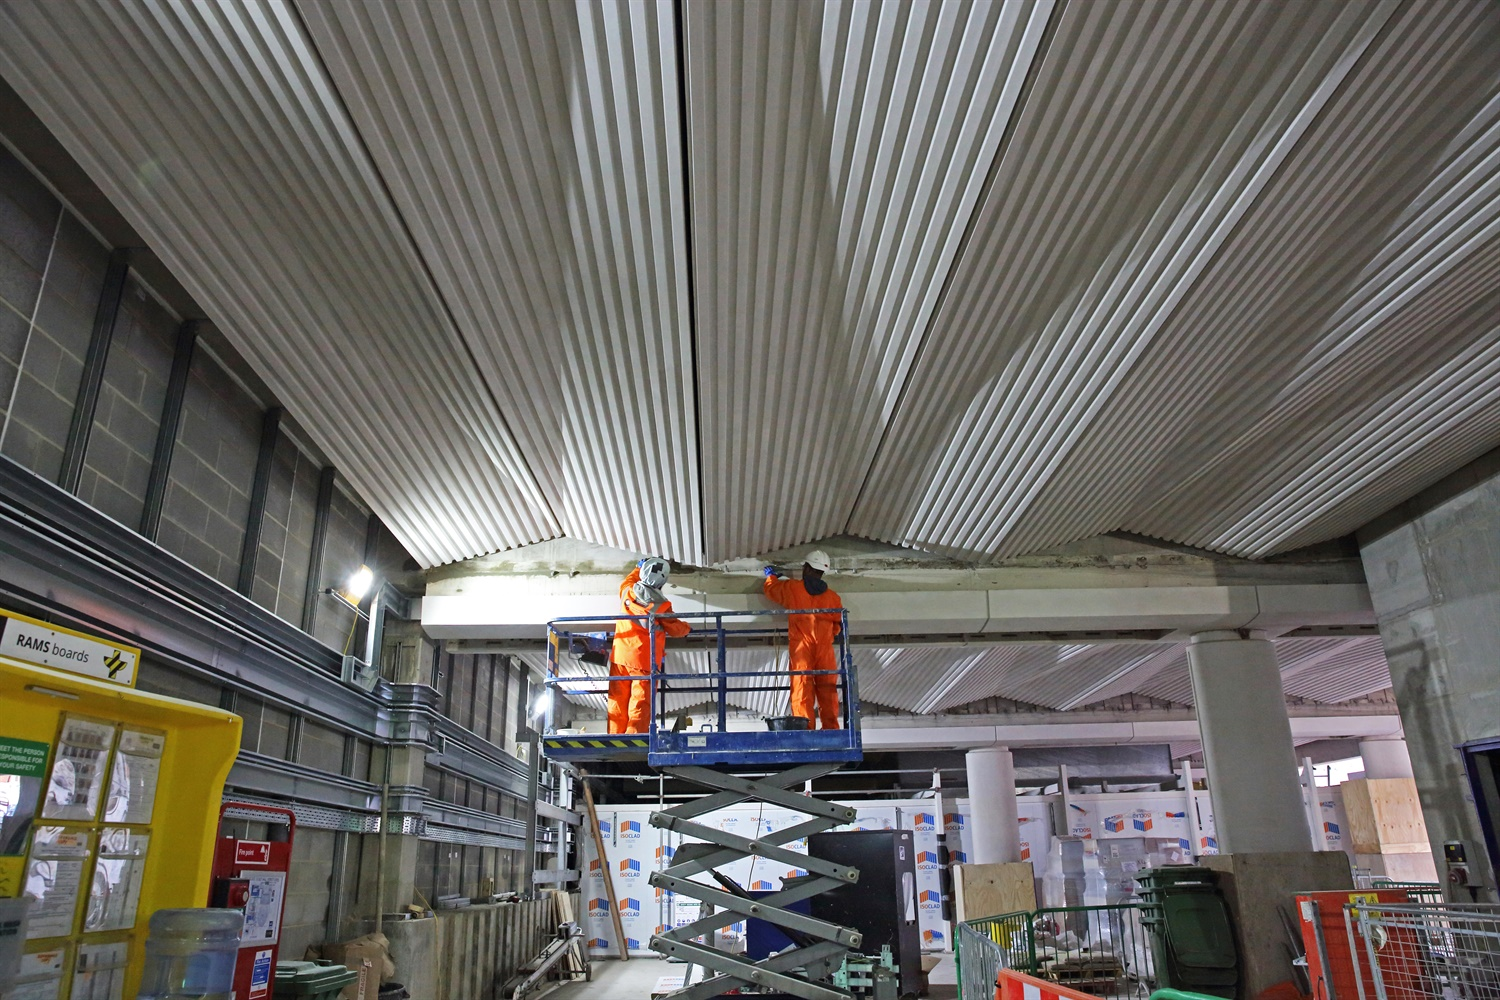 Crossrail unveils striking ceiling images at Farringdon and Liverpool Street stations